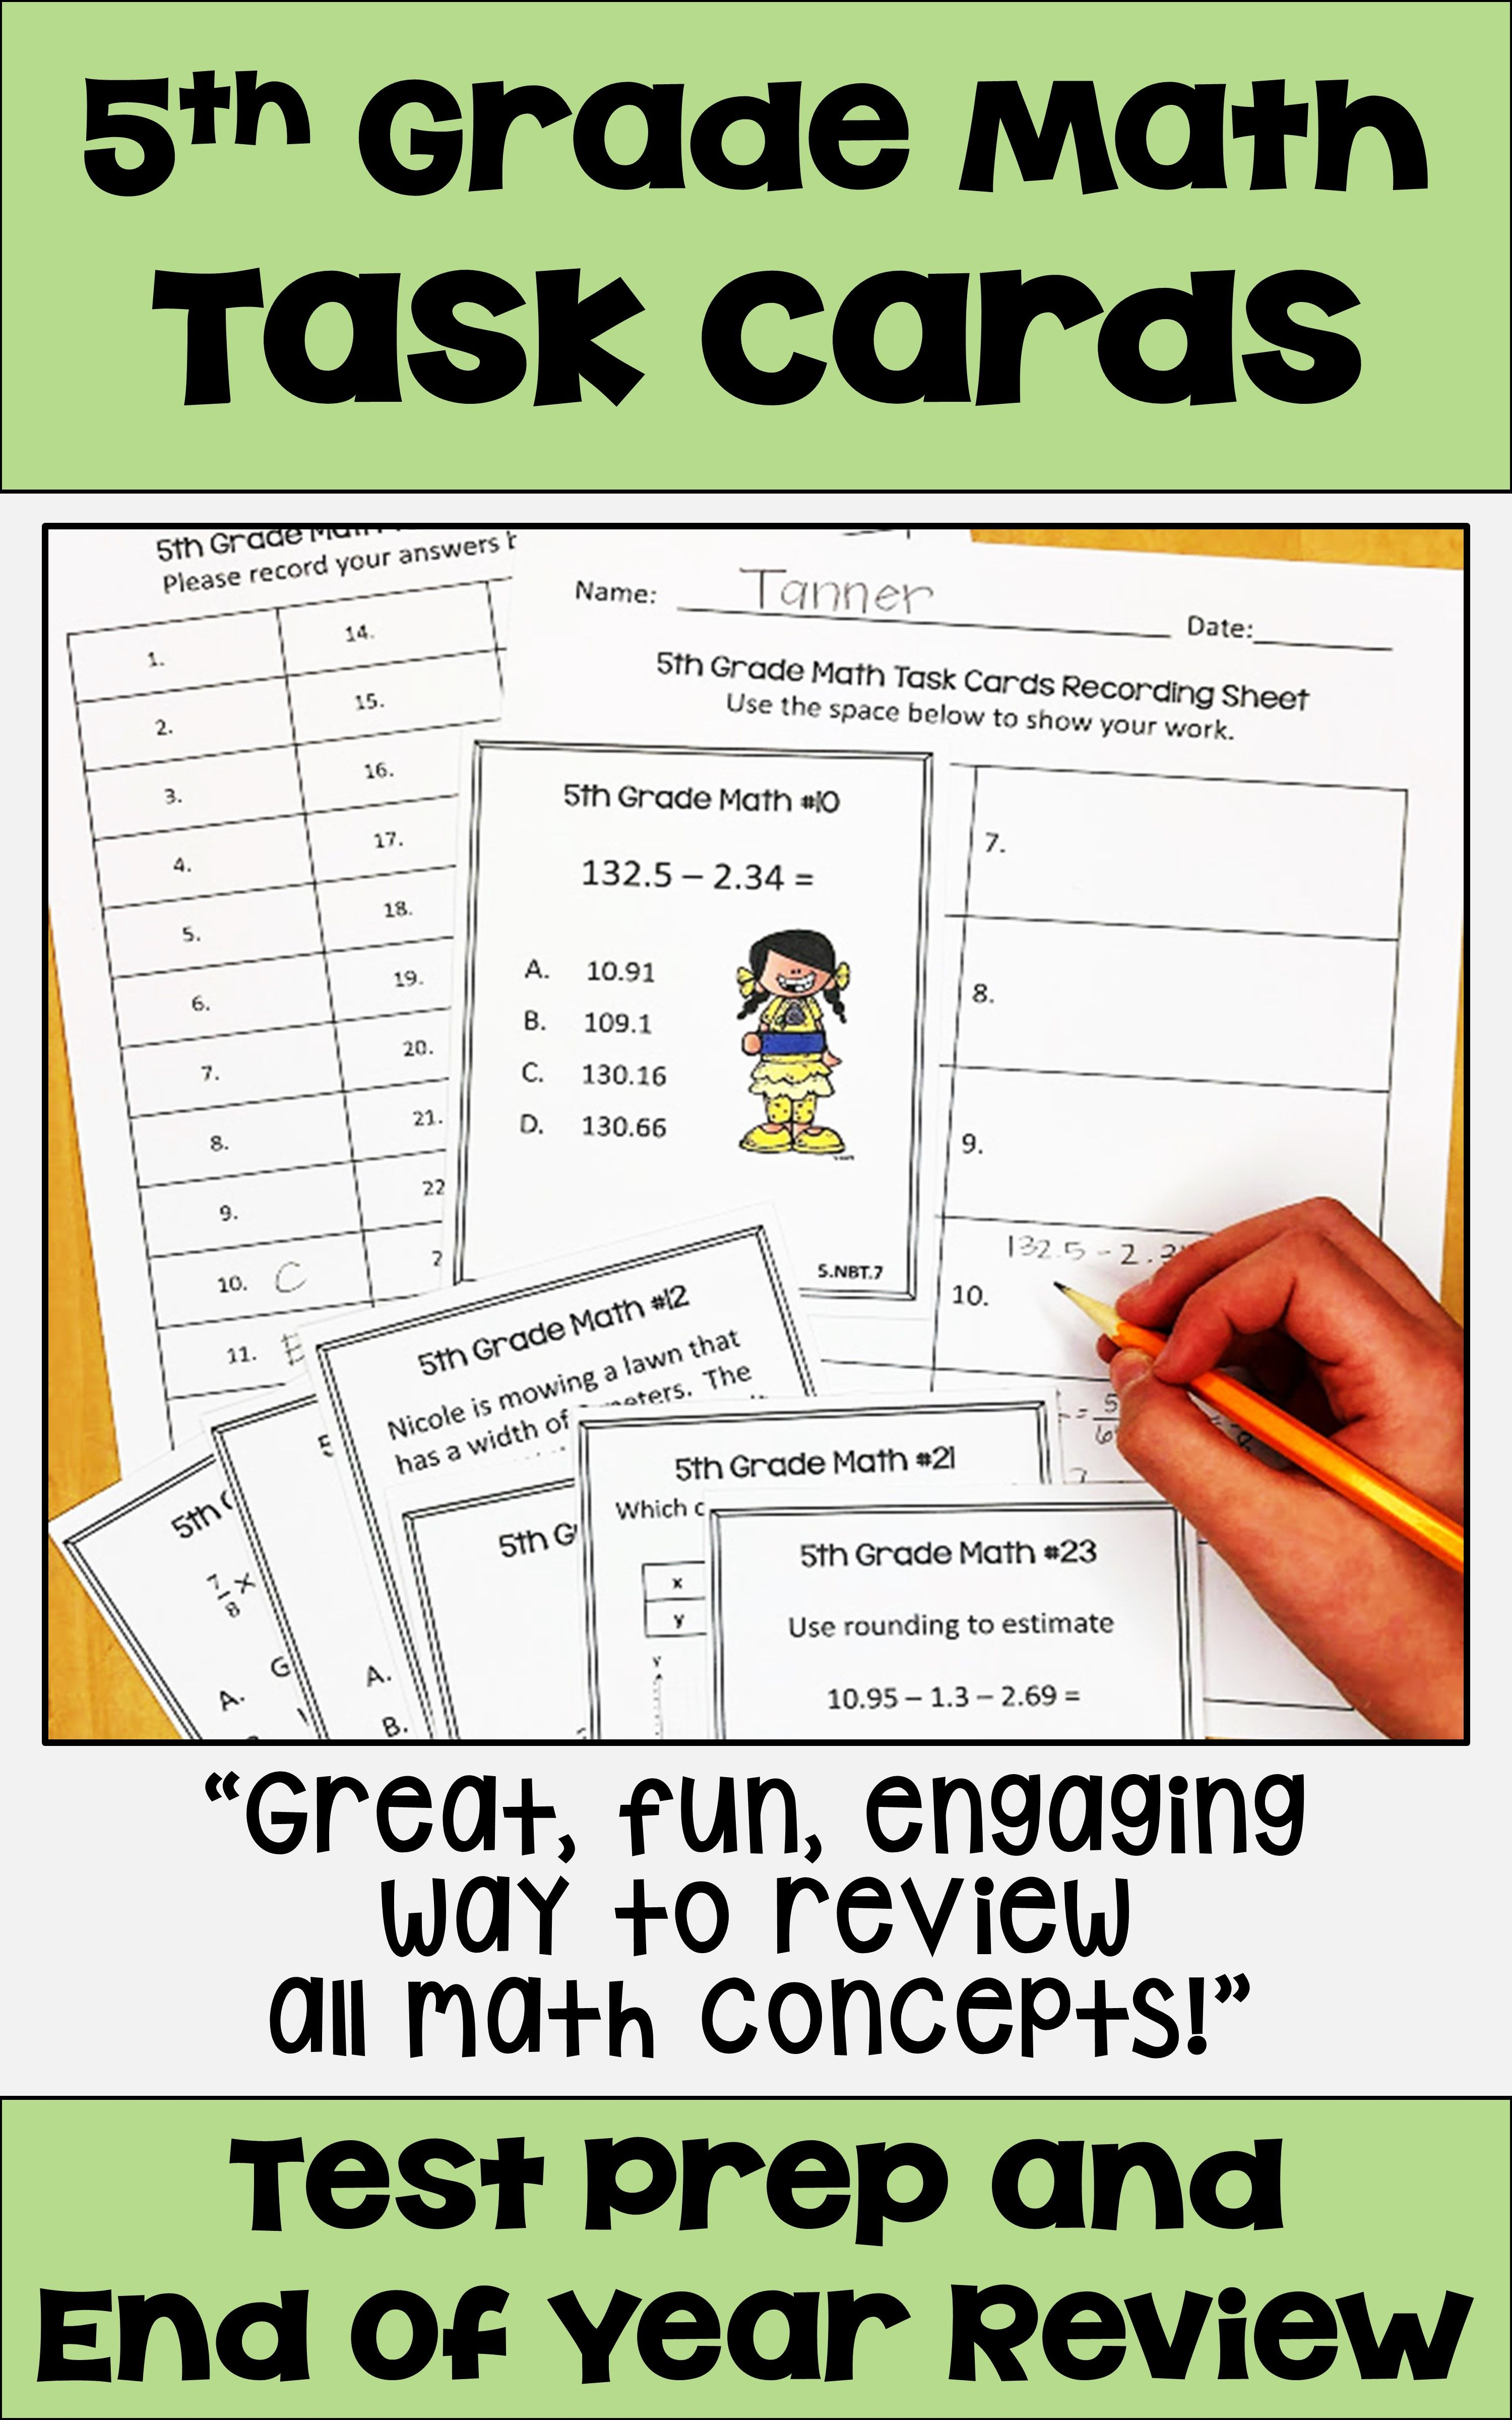 5th Grade Math Task Cards For Review And Test Prep 5th Grade Math Math Task Cards